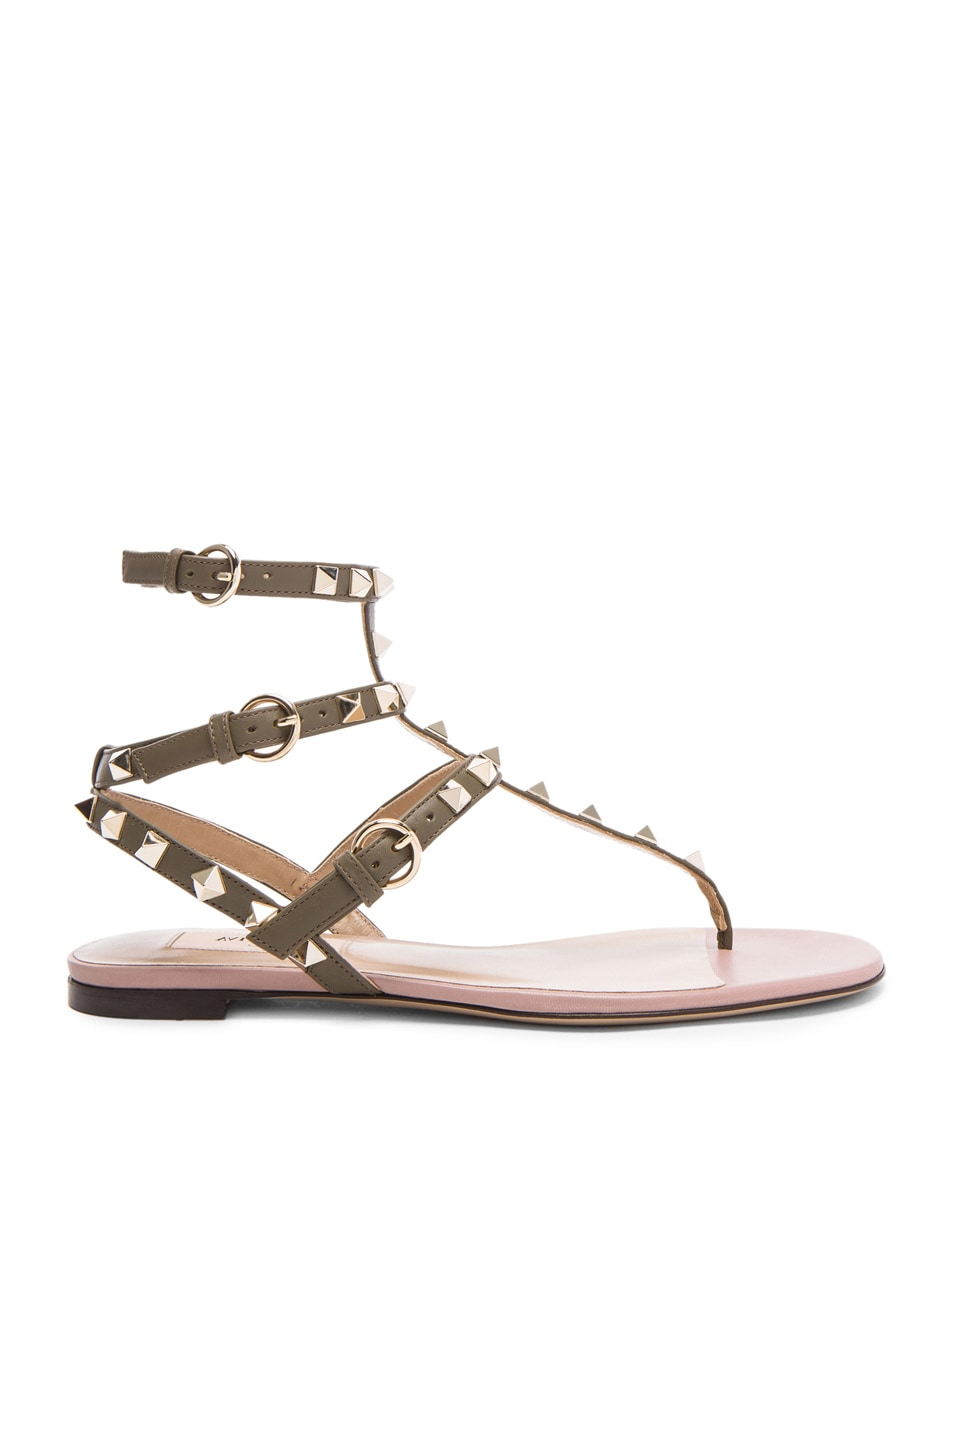 Army Valentino 05 In Rockstud Gladiator Sandals Green Leather T kZuPXiO